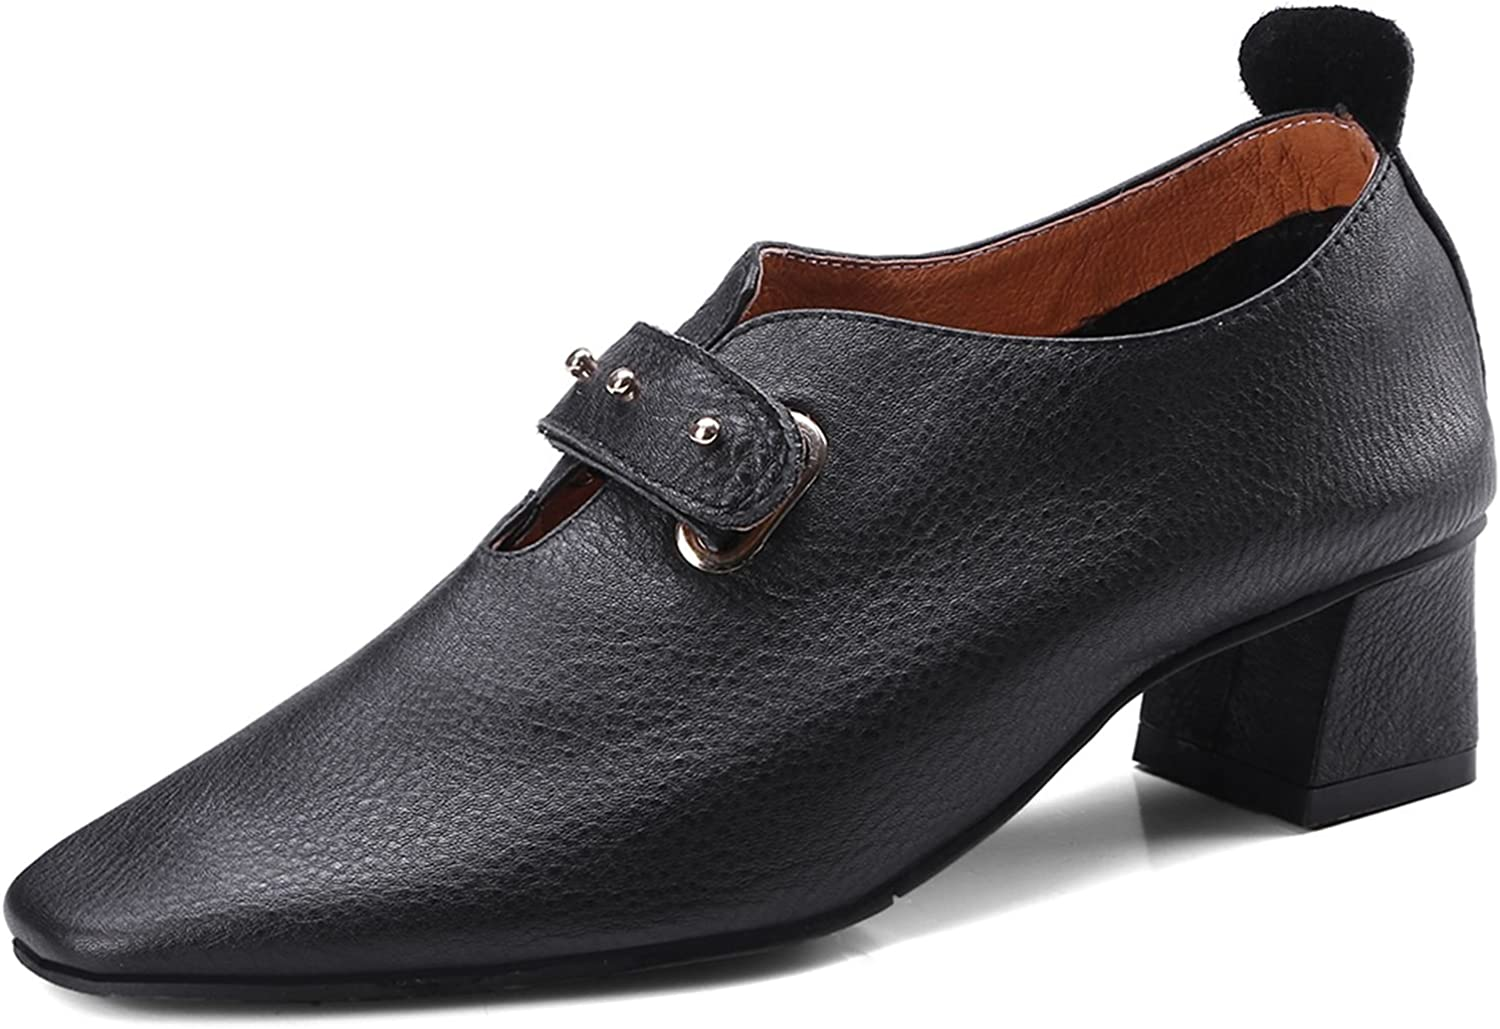 VIMISAOI Women's Genuine Leather Casual Clasps Strap Slip-on Loafers Comfort Walking Heels shoes